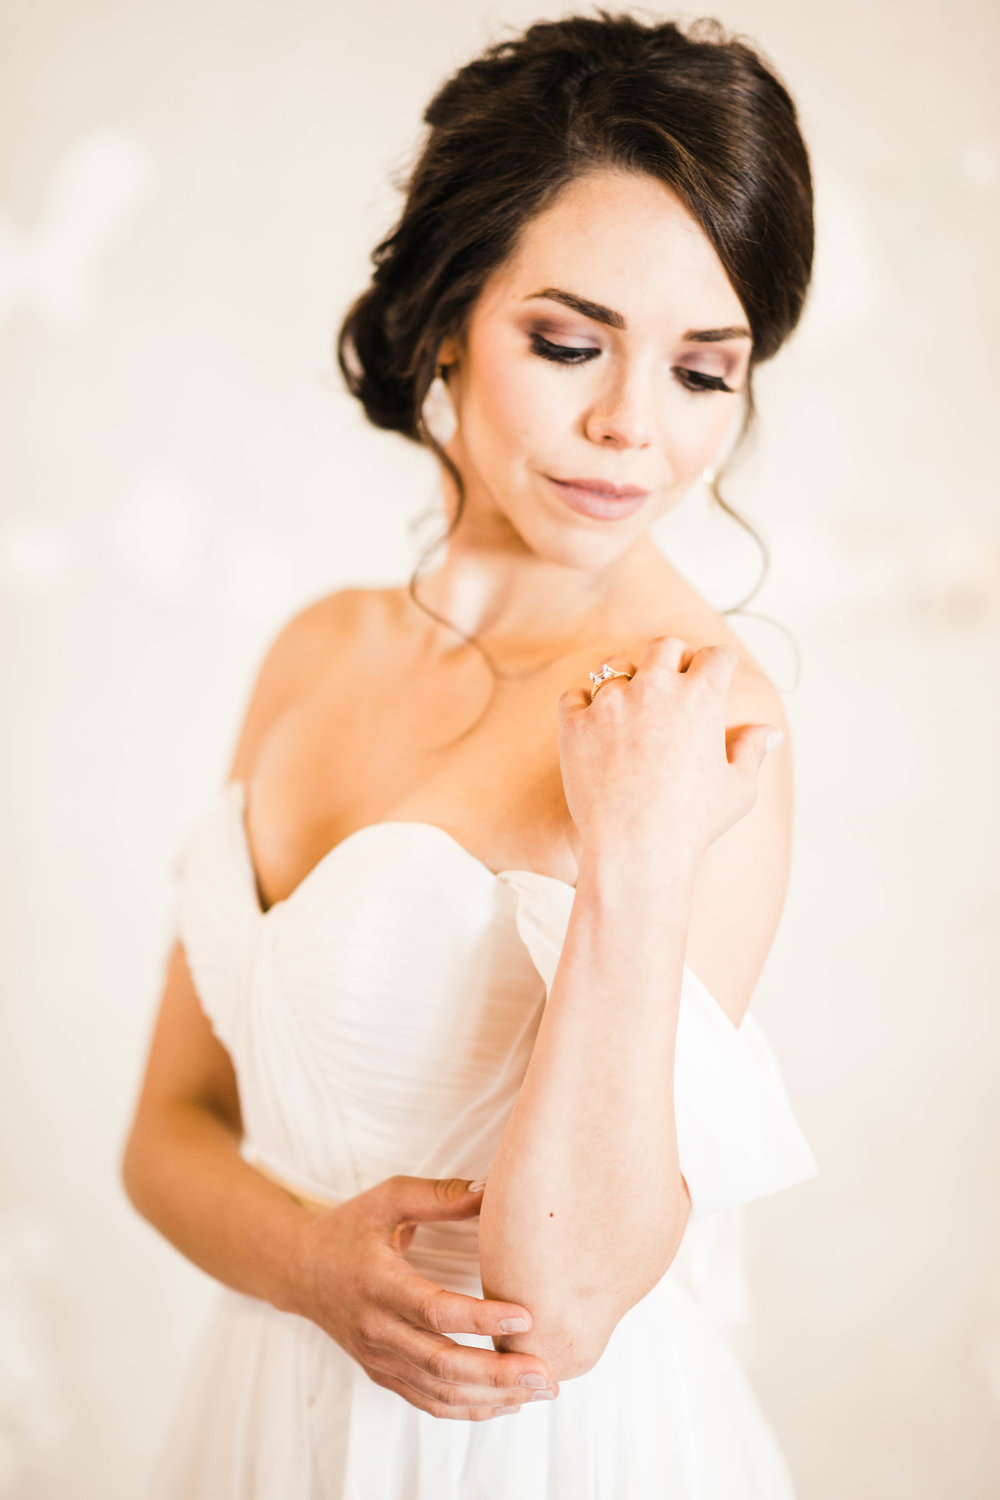 Wink Hair and Makeup Raleigh NC North Carolina Bridal Wedding Bride